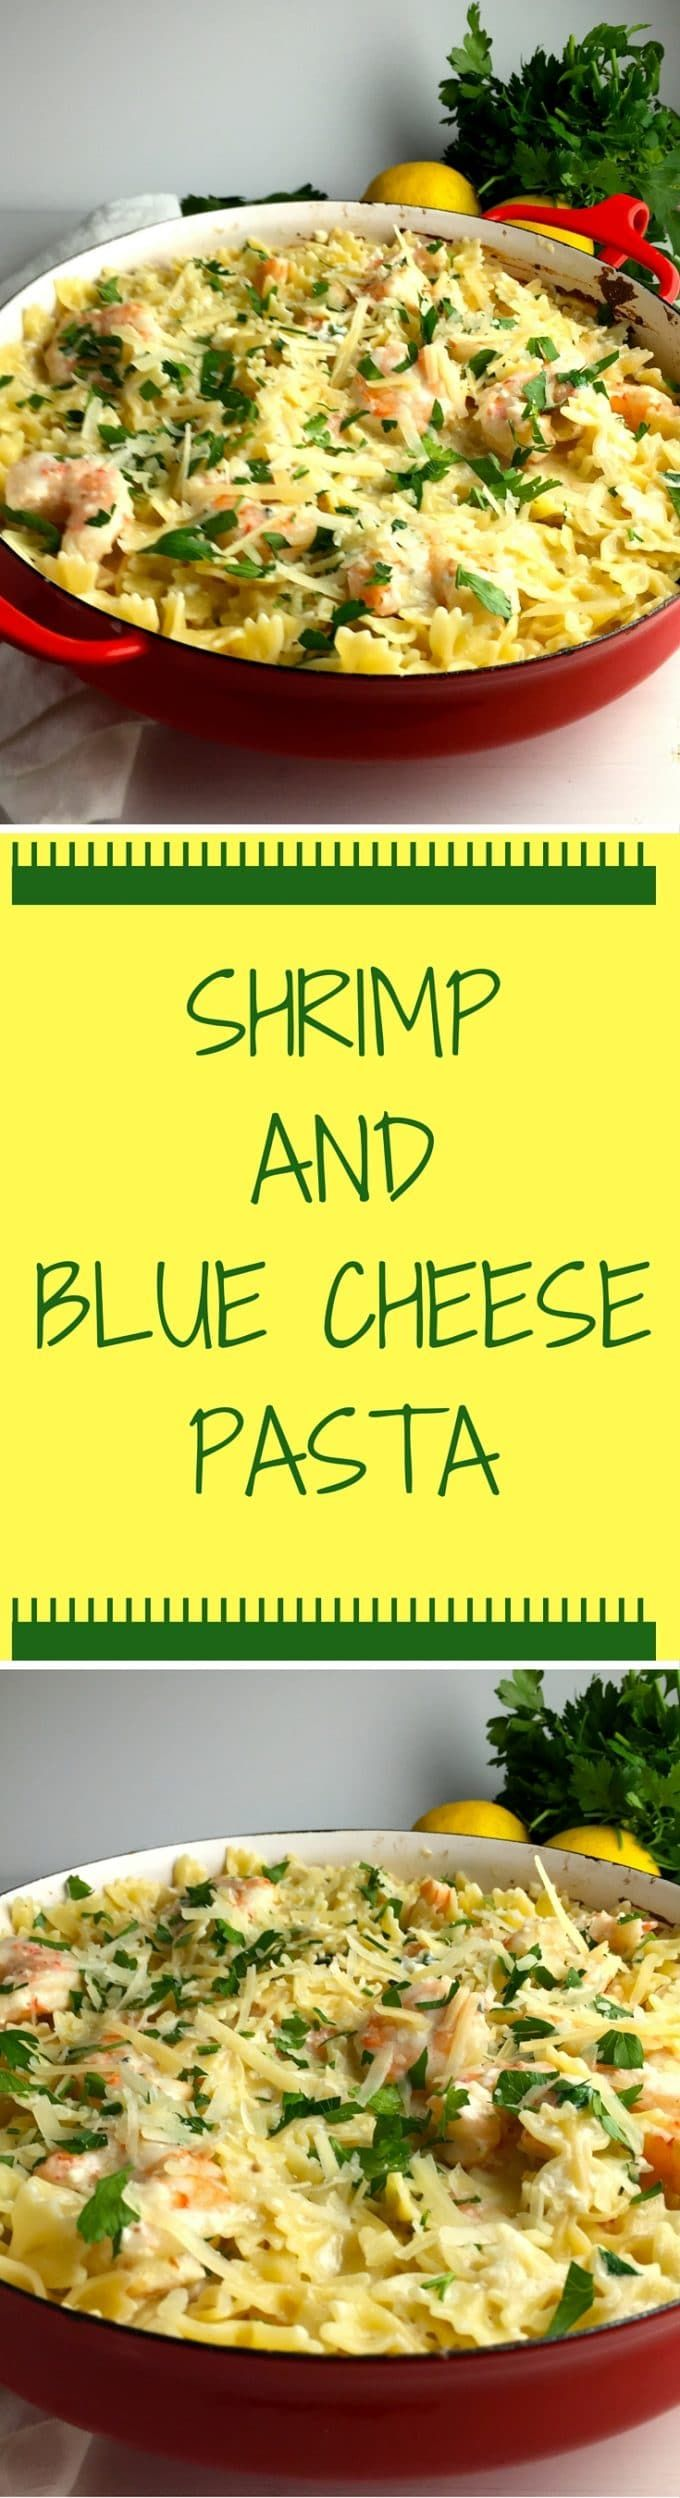 Shrimp and Blue Cheese Pasta is tender shrimp mixed with a decadent blue cheese sauce over yummy pasta covered with parmesan cheese. via @http://www.pinterest.com/gritspinecones/ (Italian Recipes Shrimp)